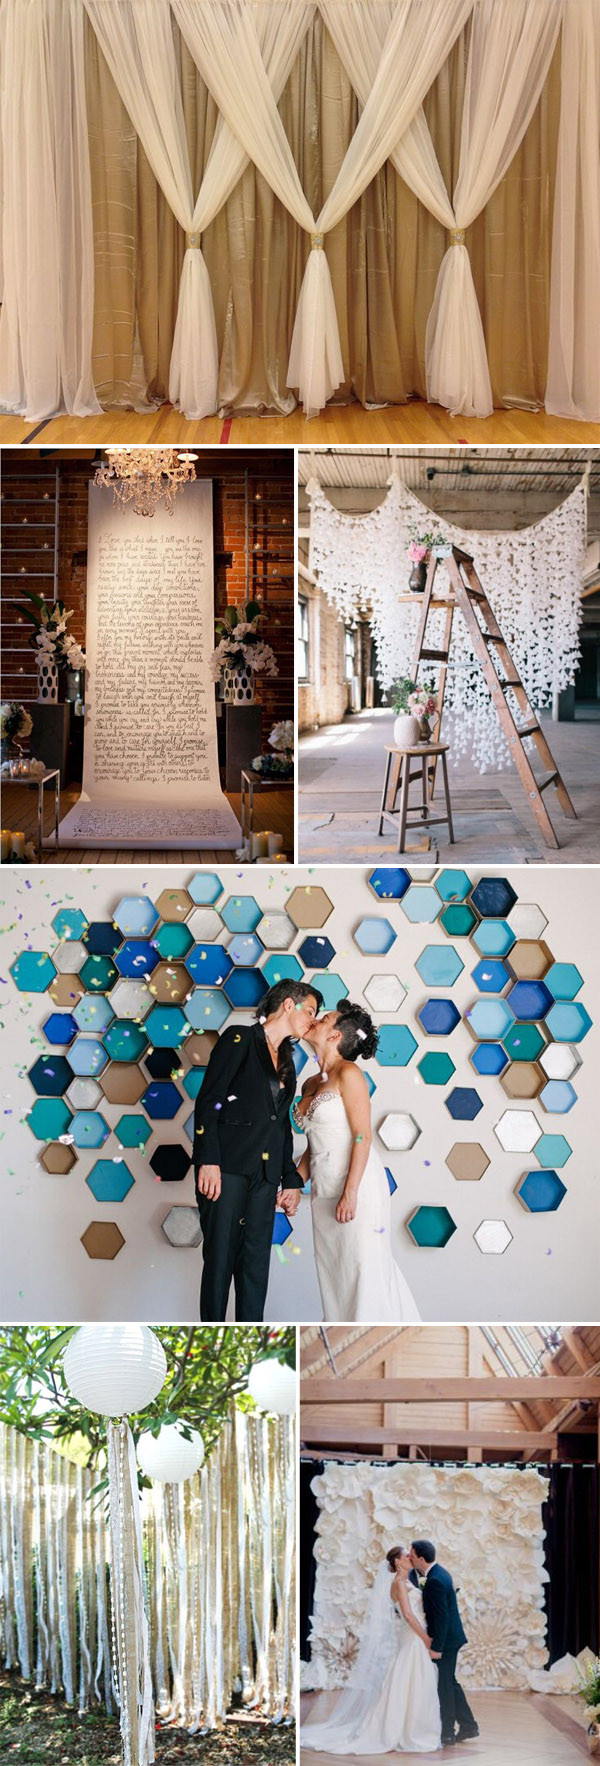 Best ideas about Wedding Backdrop Ideas DIY . Save or Pin Top 20 Unique Backdrops For Wedding Ceremony Ideas Now.